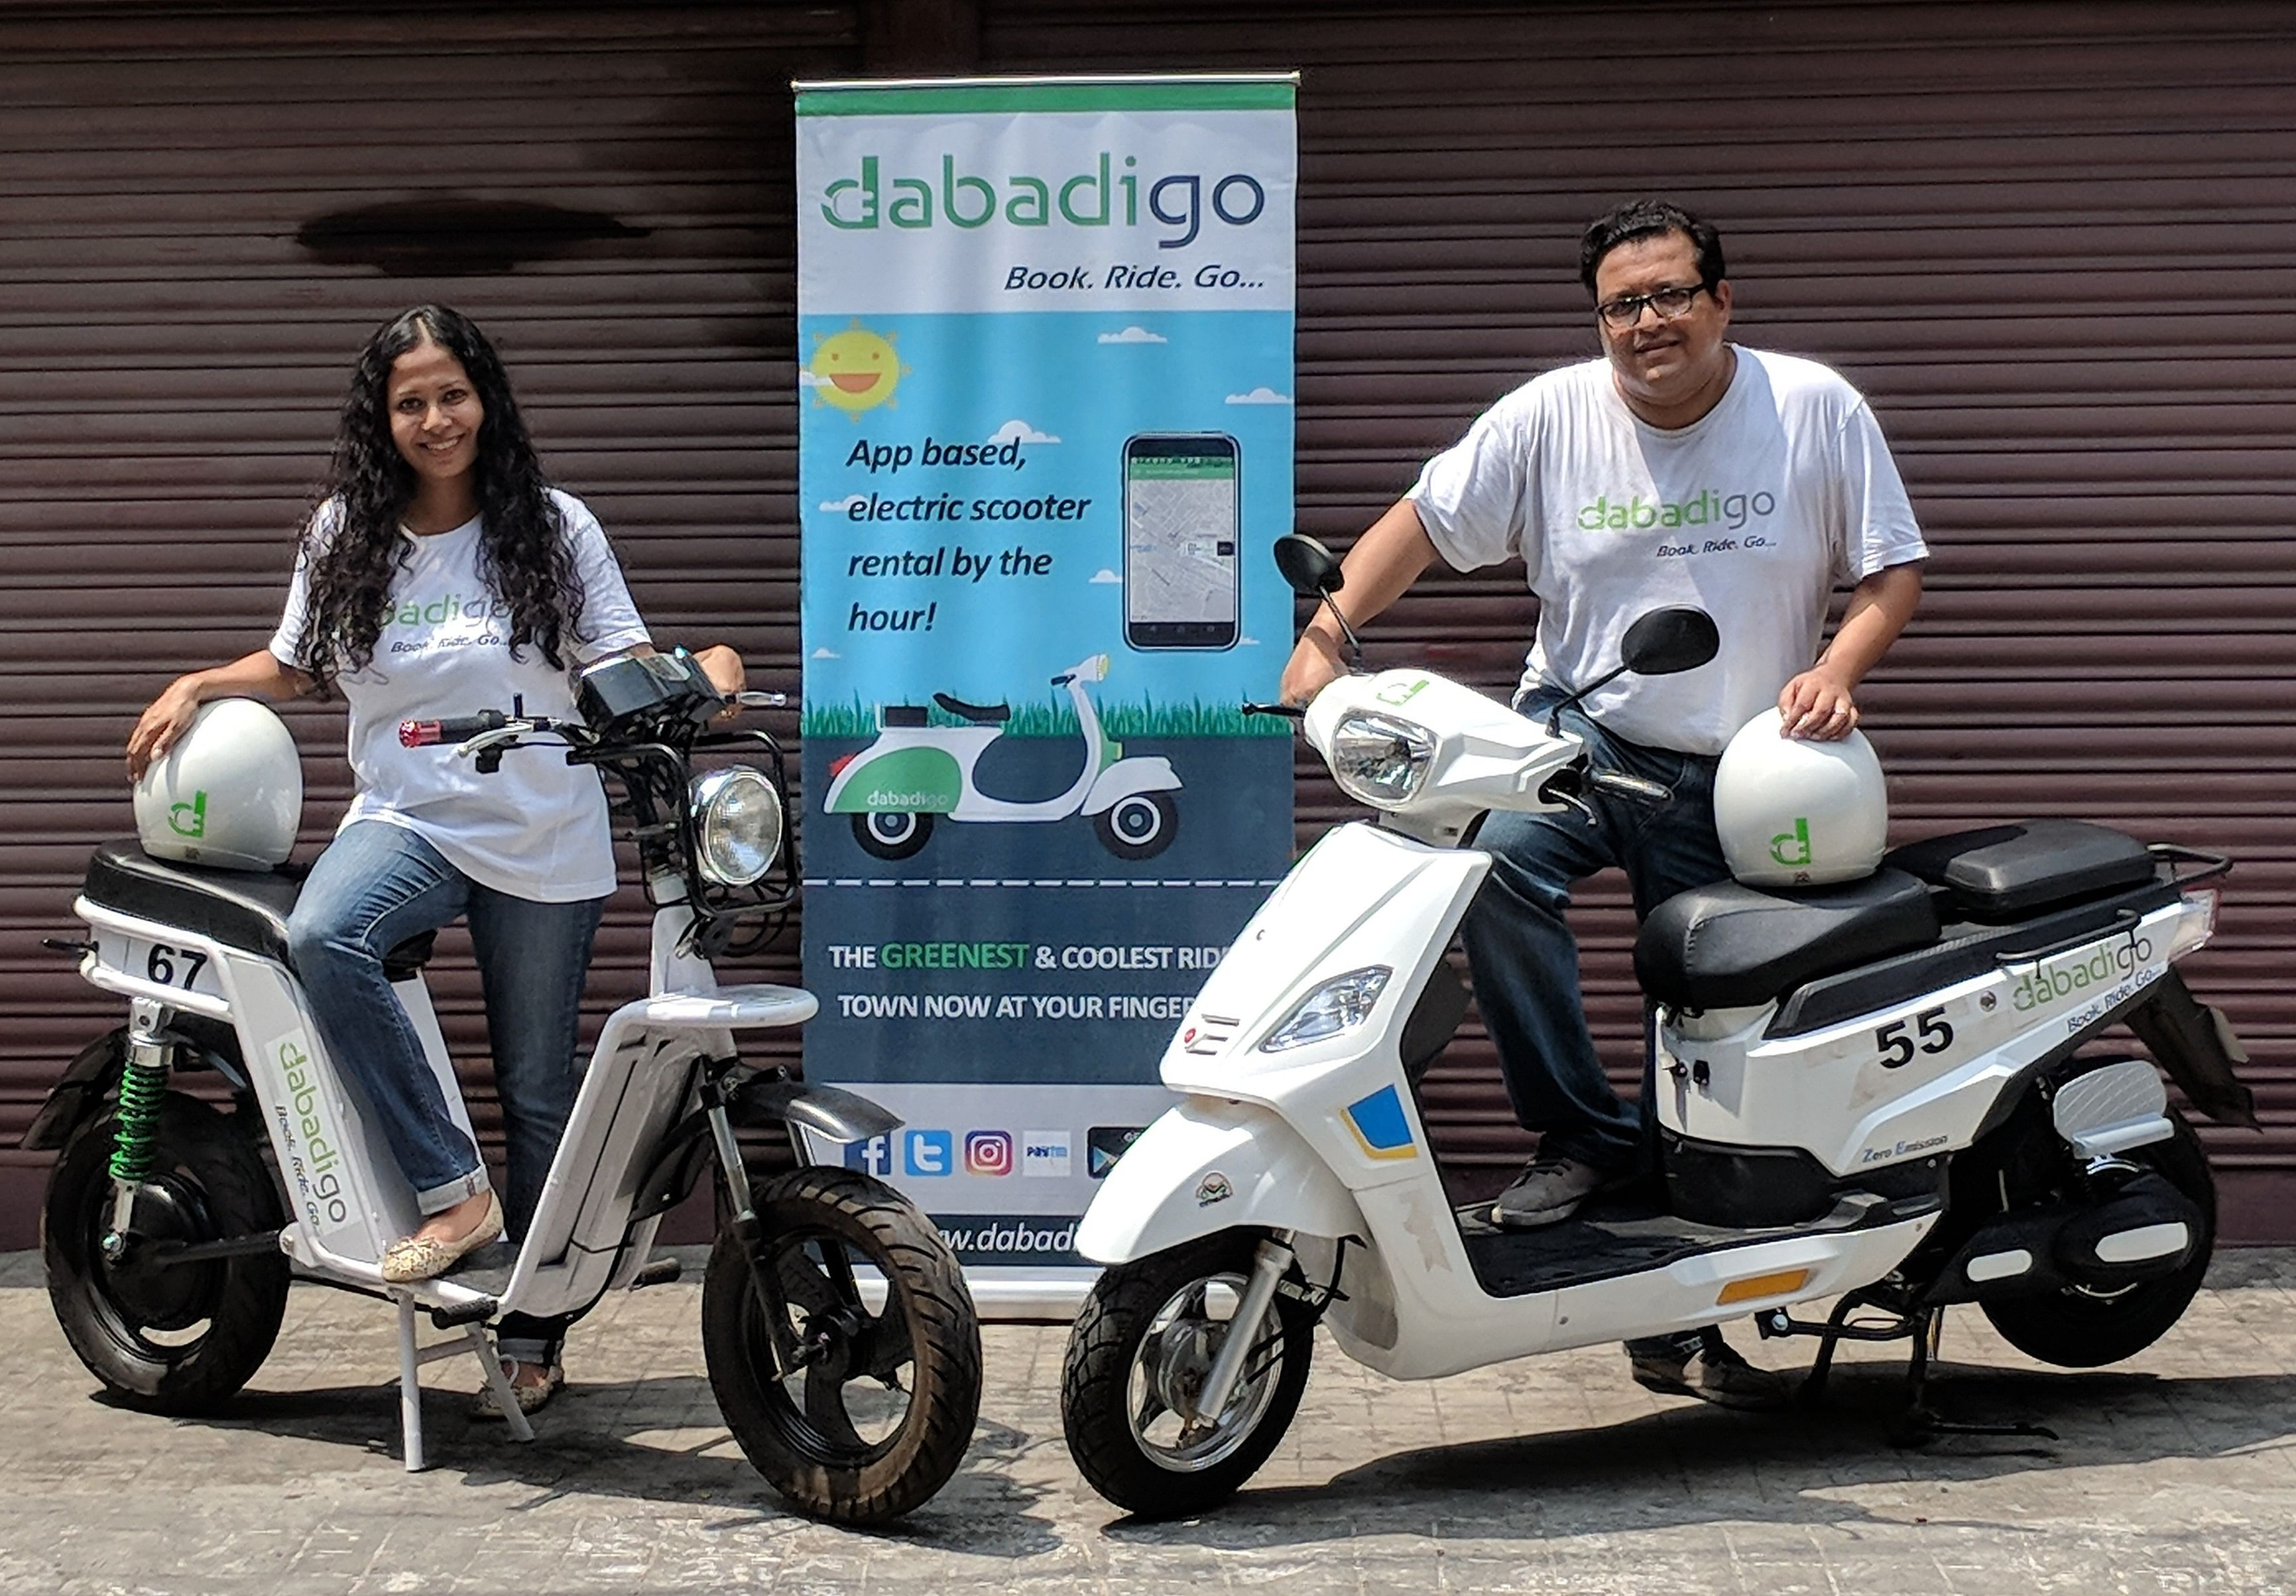 promo code a23d0 2f36a That spark of an idea led to the beginning of dabadigo, a rental service  for electric scooters that didn t require a license to operate and could be  dropped ...